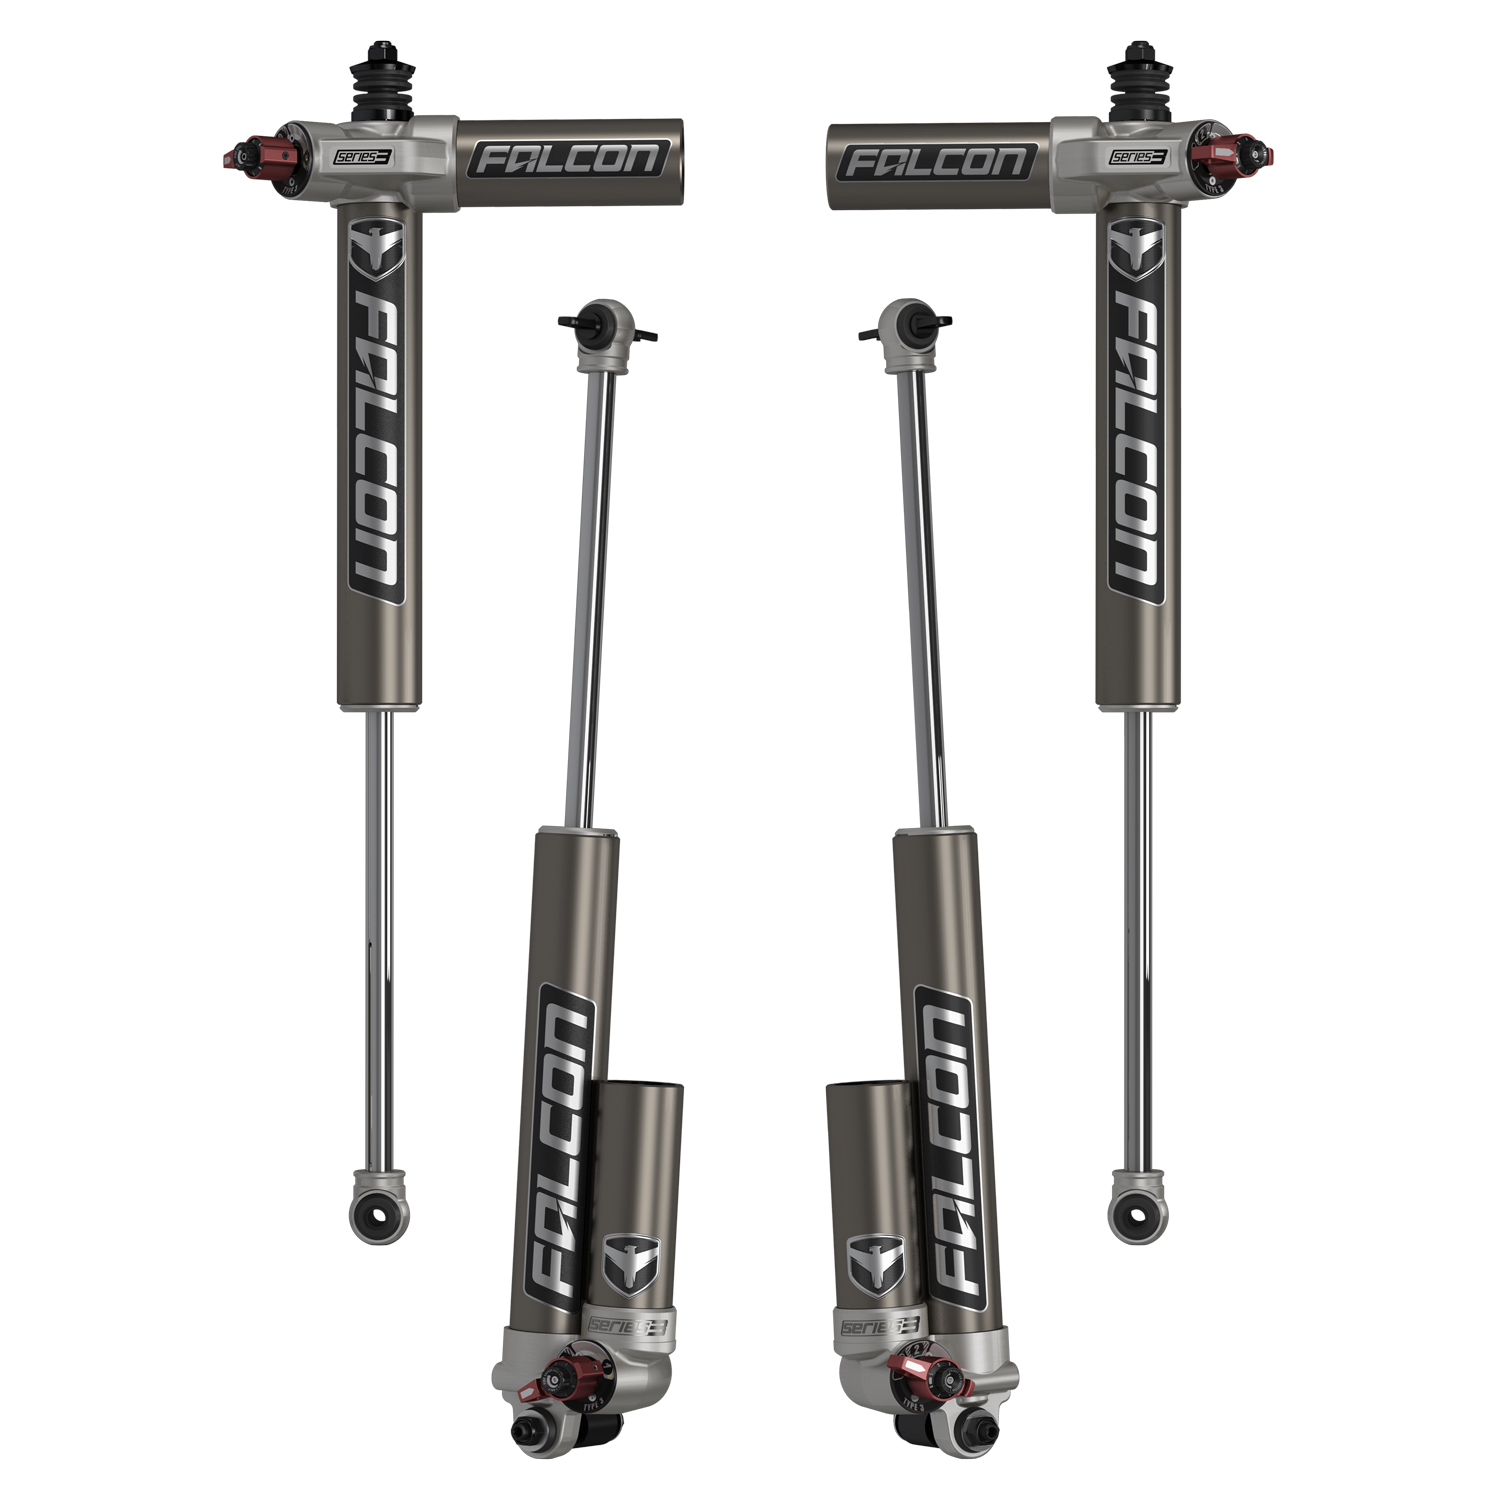 Teraflex Falcon Series 3.3 Adjustable Piggyback Shocks Front & Rear Kit 3-4.5in Lift - JK 2dr